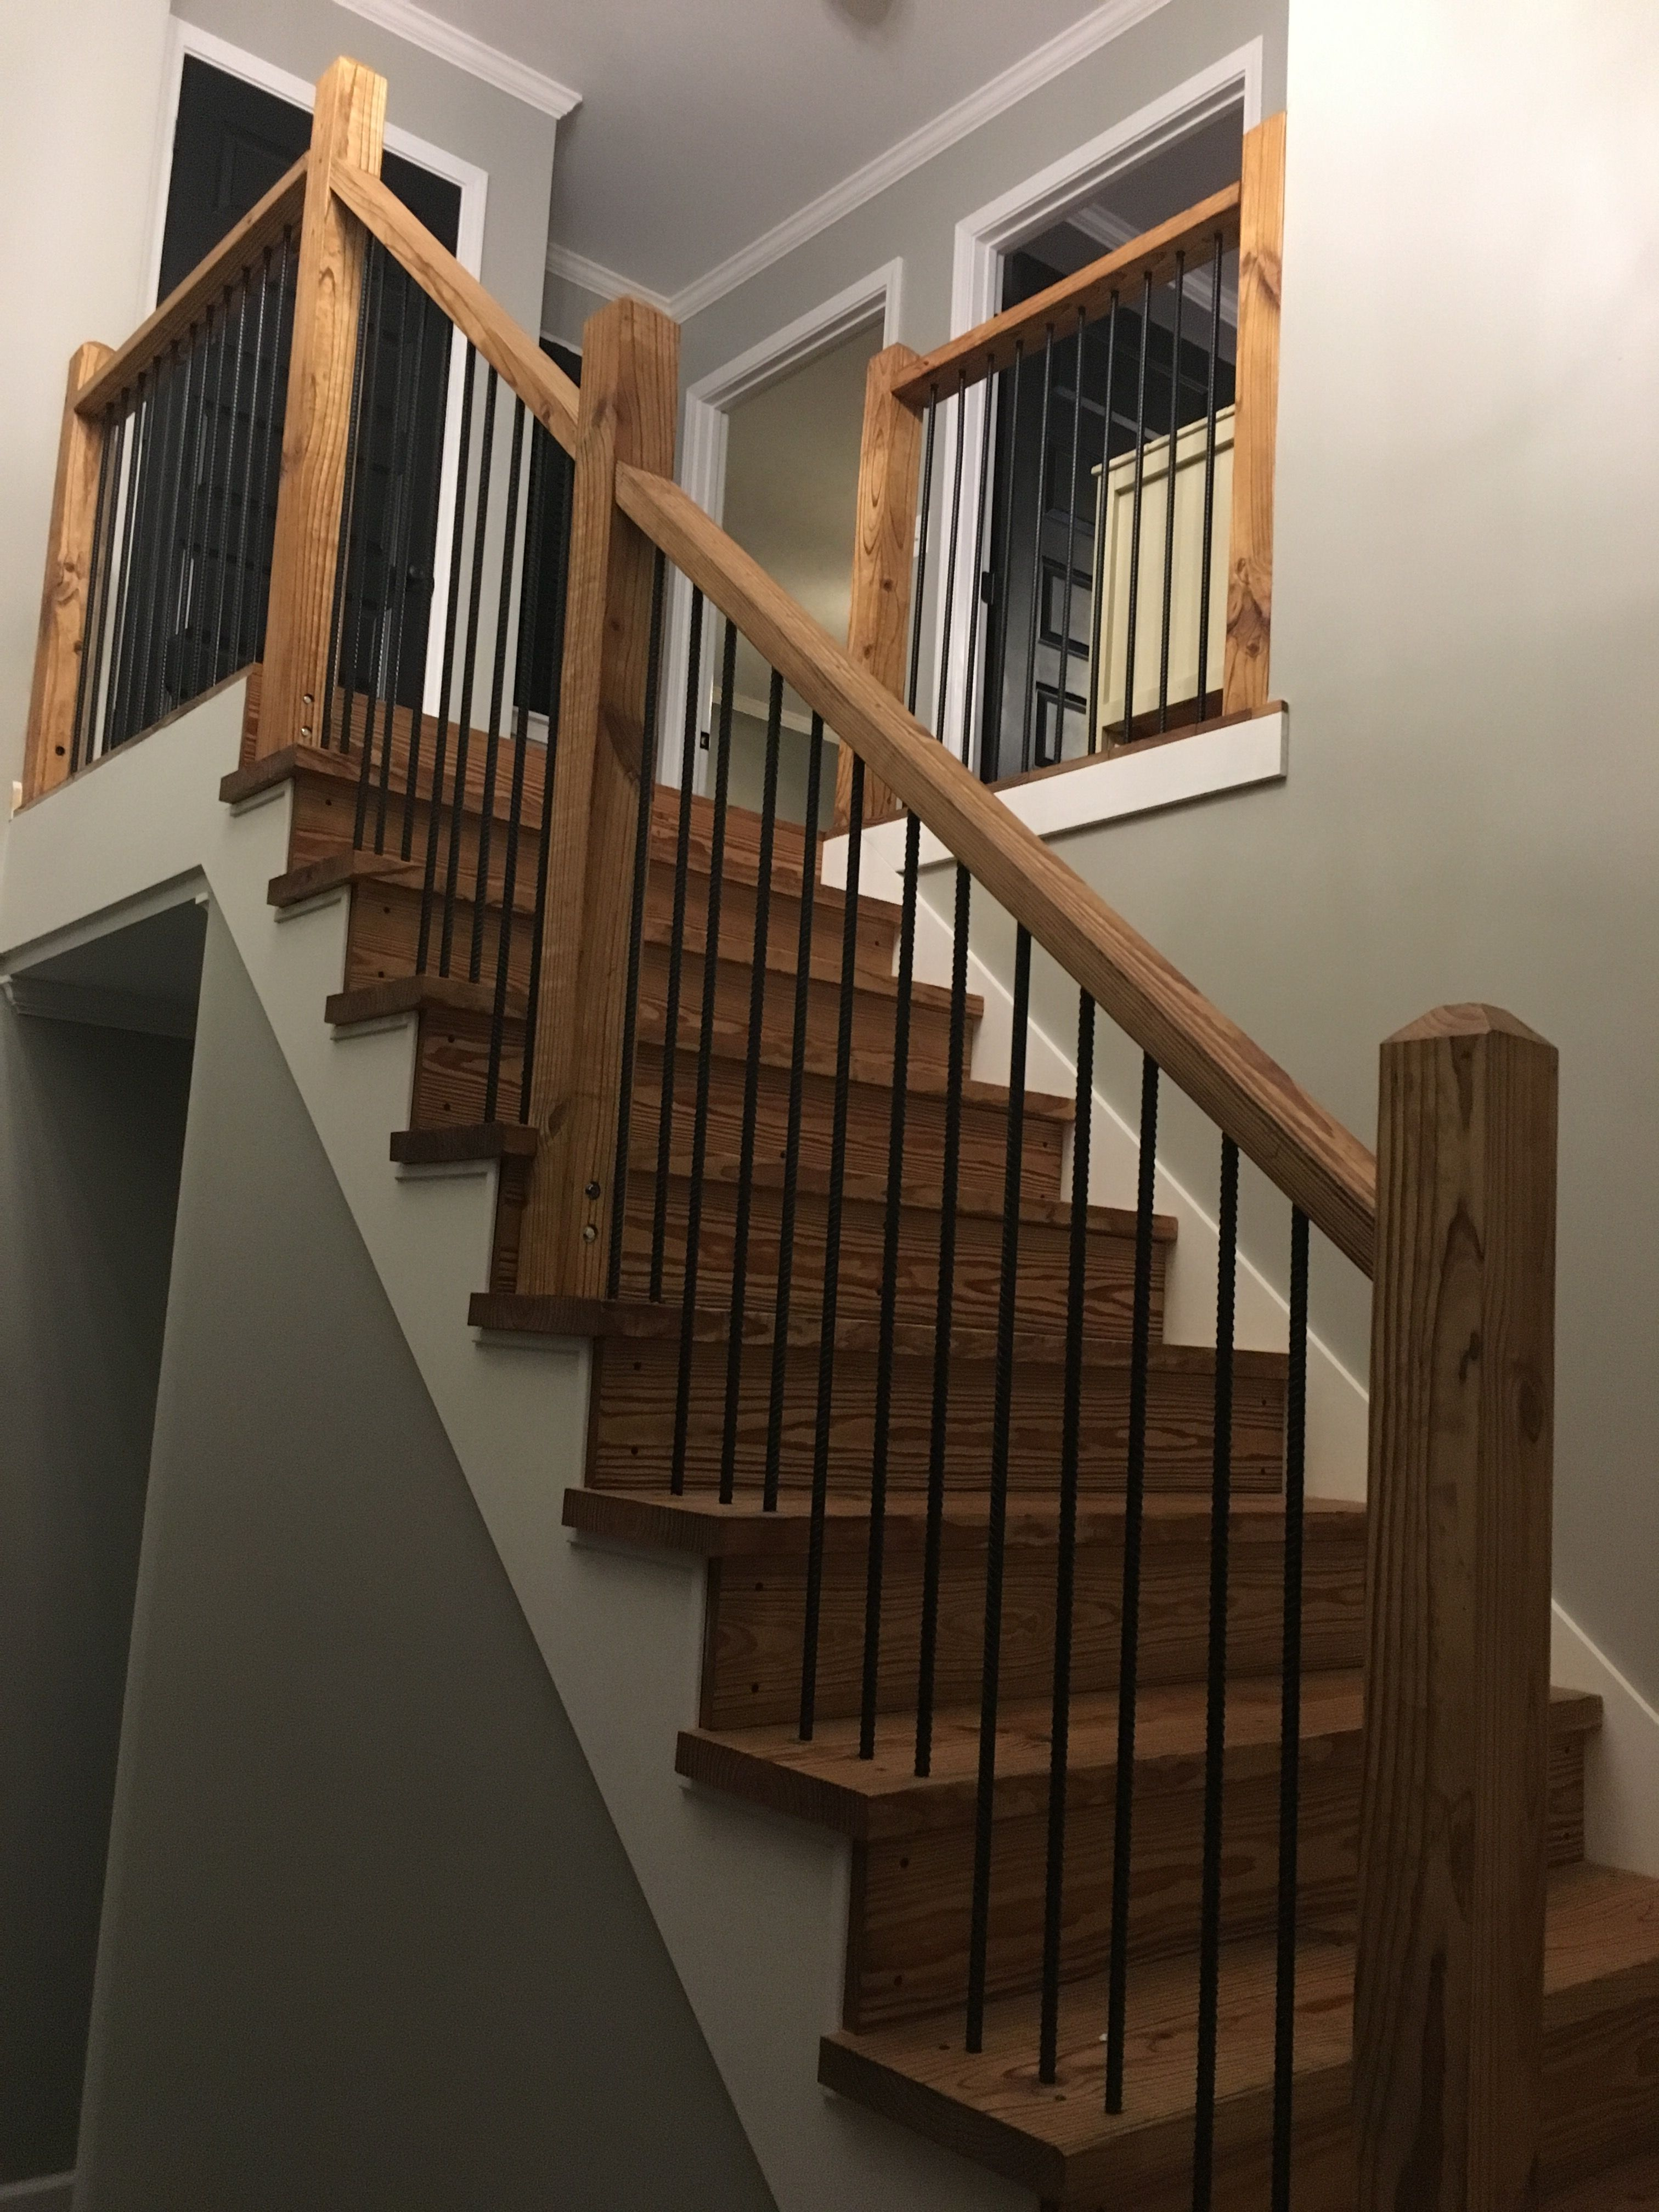 Best Stairs Rebar And Tung Oil In 2019 Wood Stairs 400 x 300